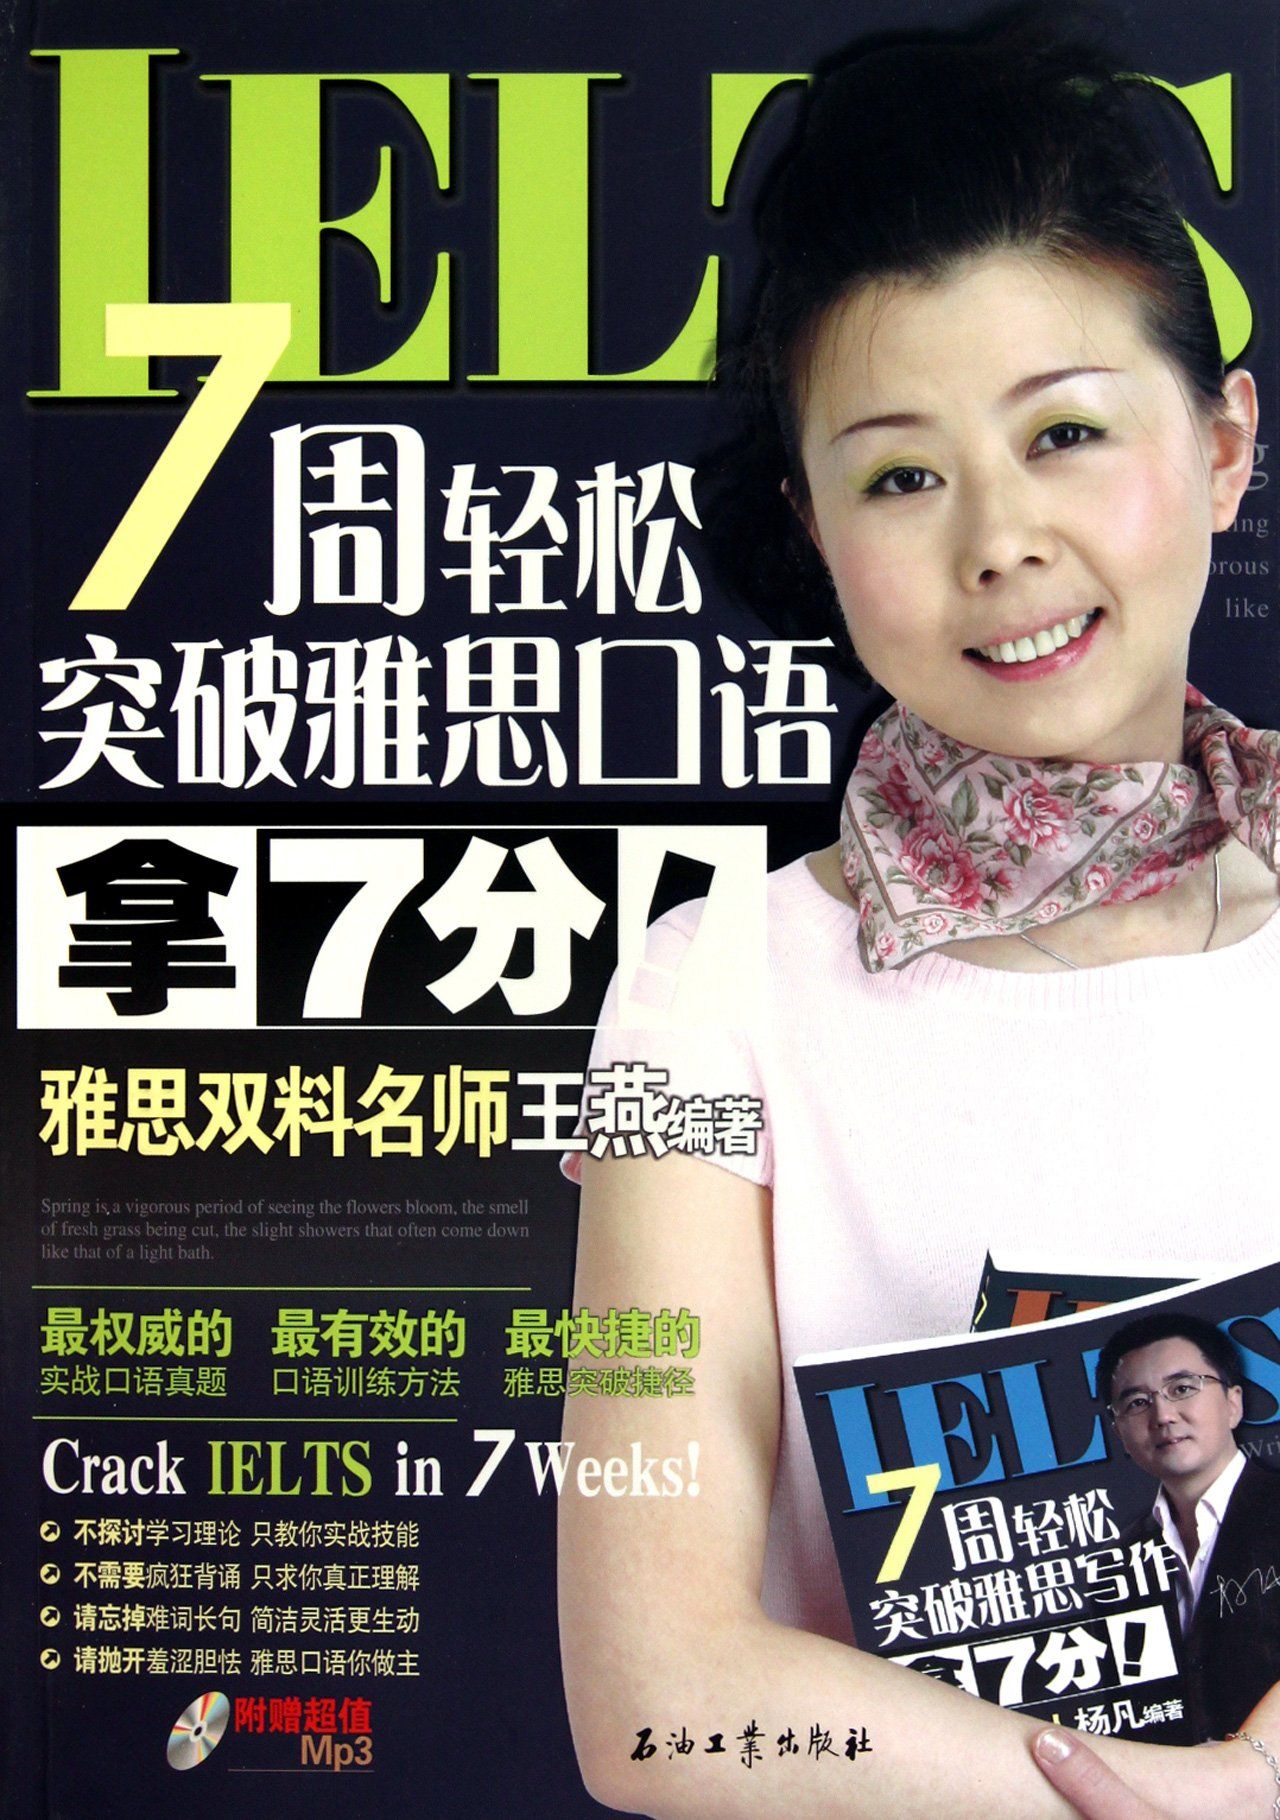 Crack IELTS in 7 Weeks-MP3 included (Chinese Edition): Wang Yan